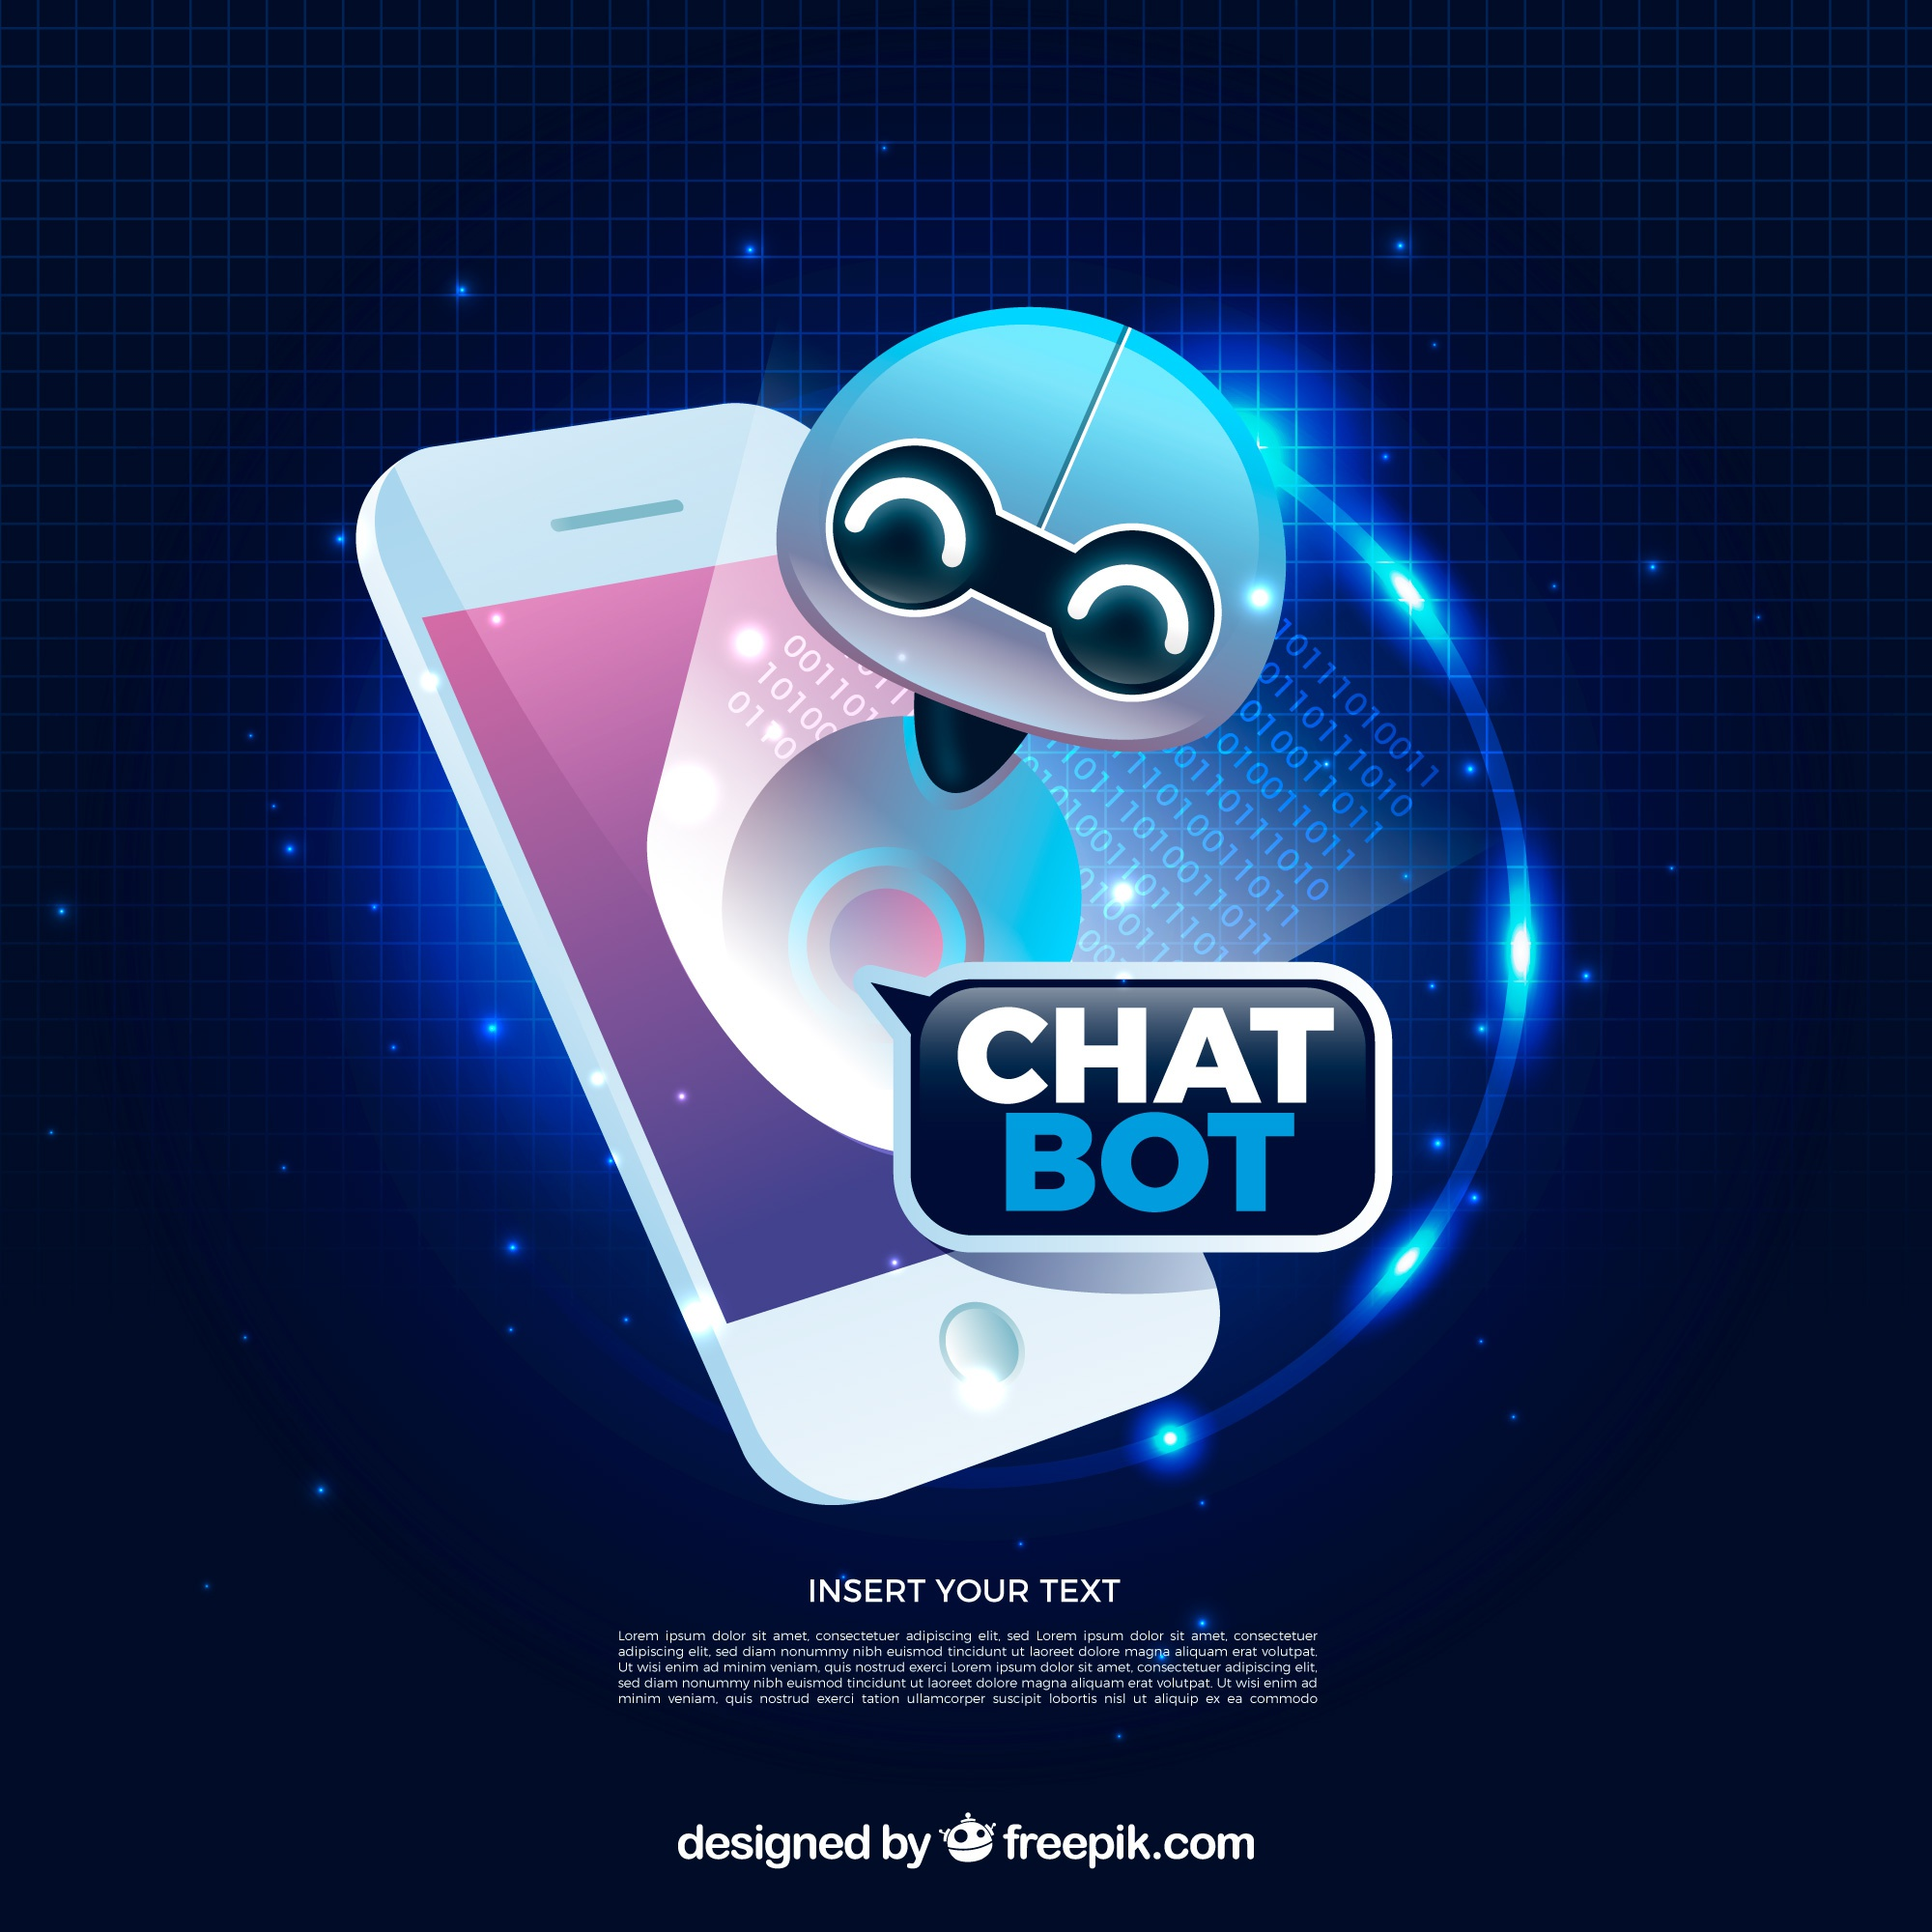 Chatbot concept background in realistic style